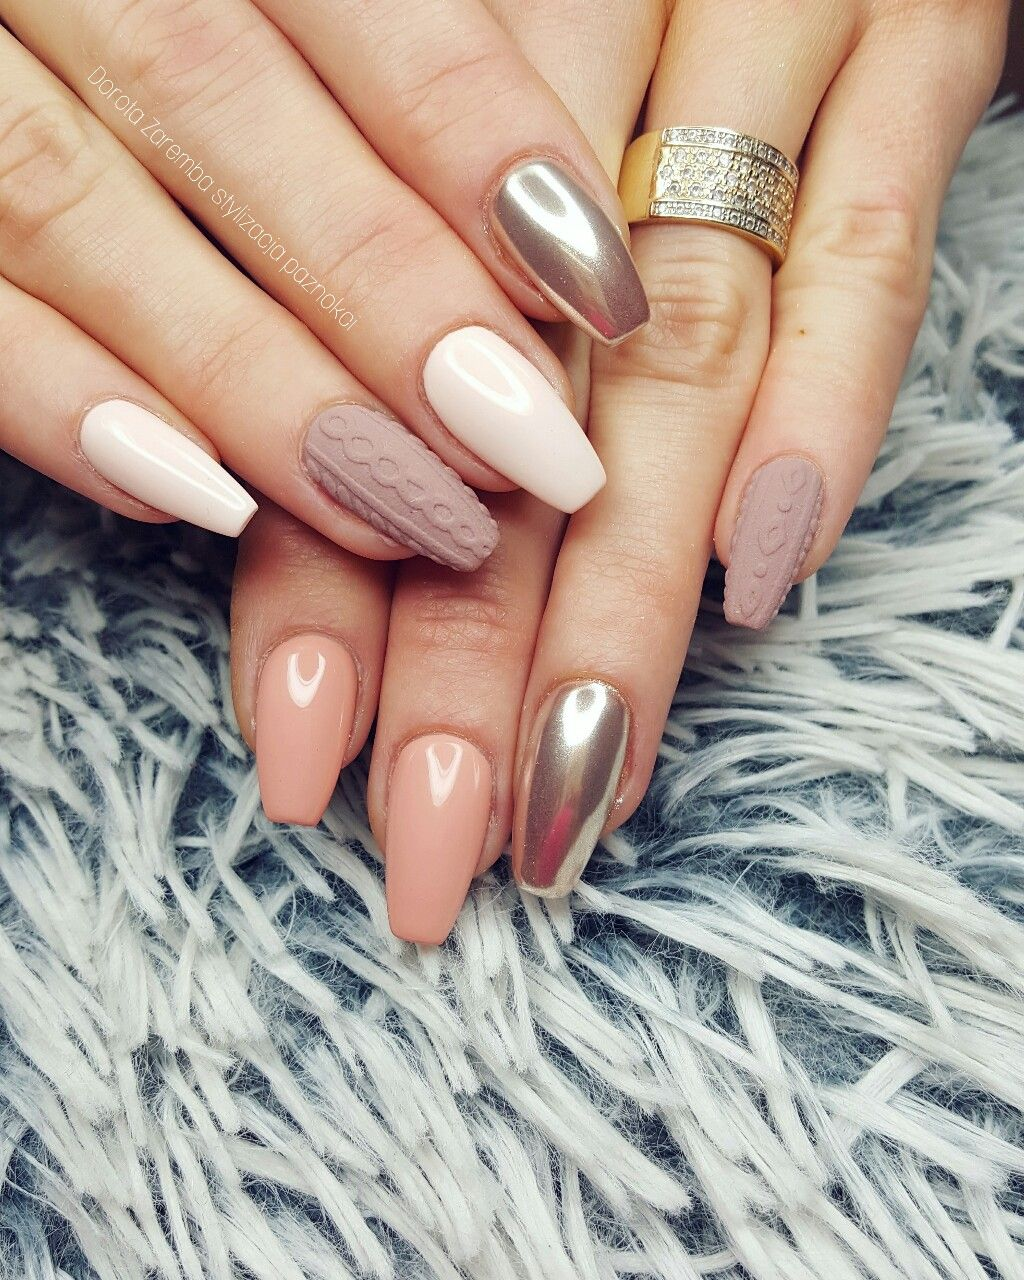 Nude sweater mirror nails Glamour nails, style nails, design nails ...